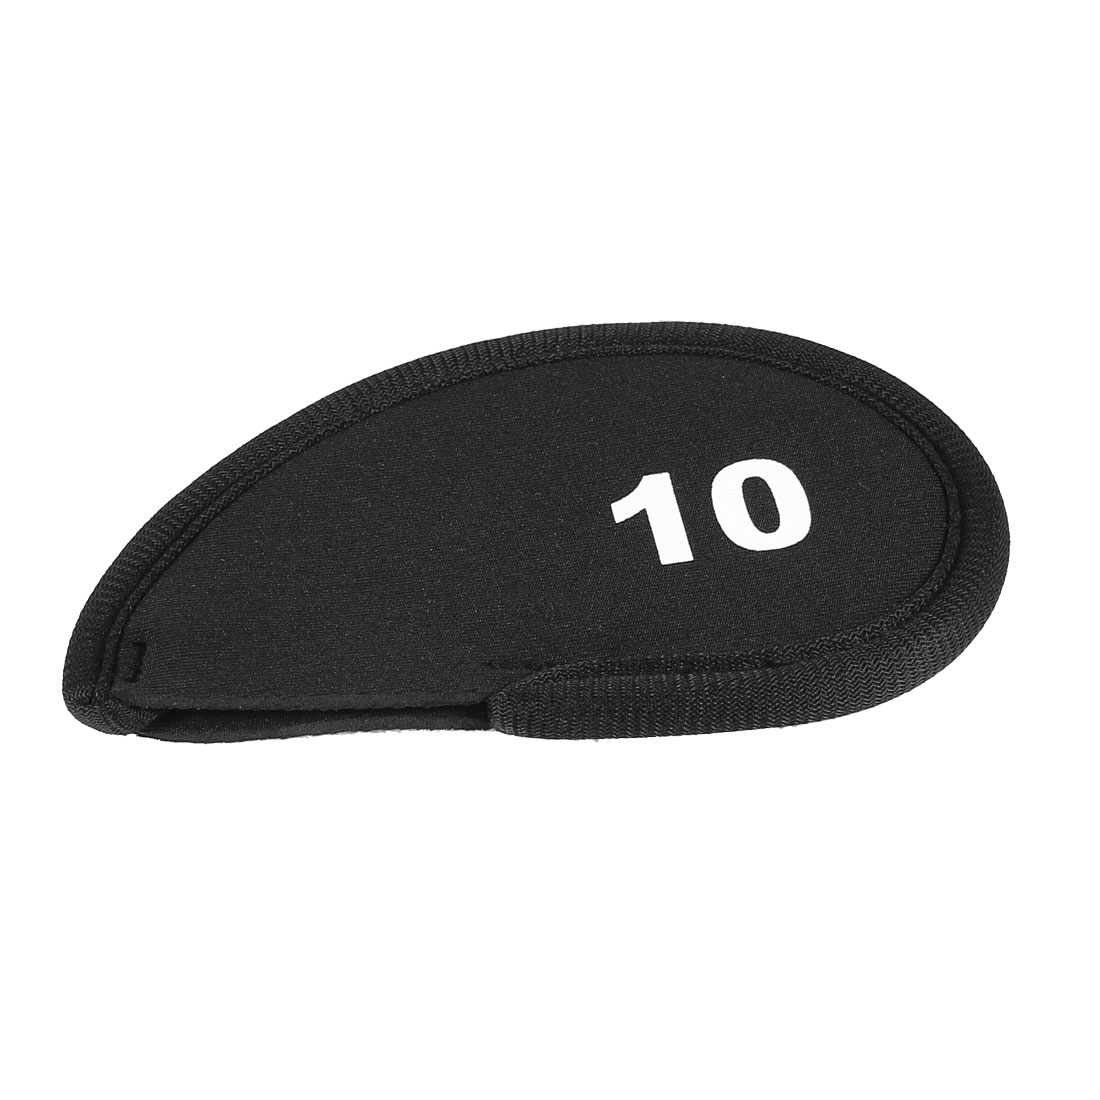 Black Neoprene Golf Club Head Cover 10 Wedge Iron Protective Headcovers